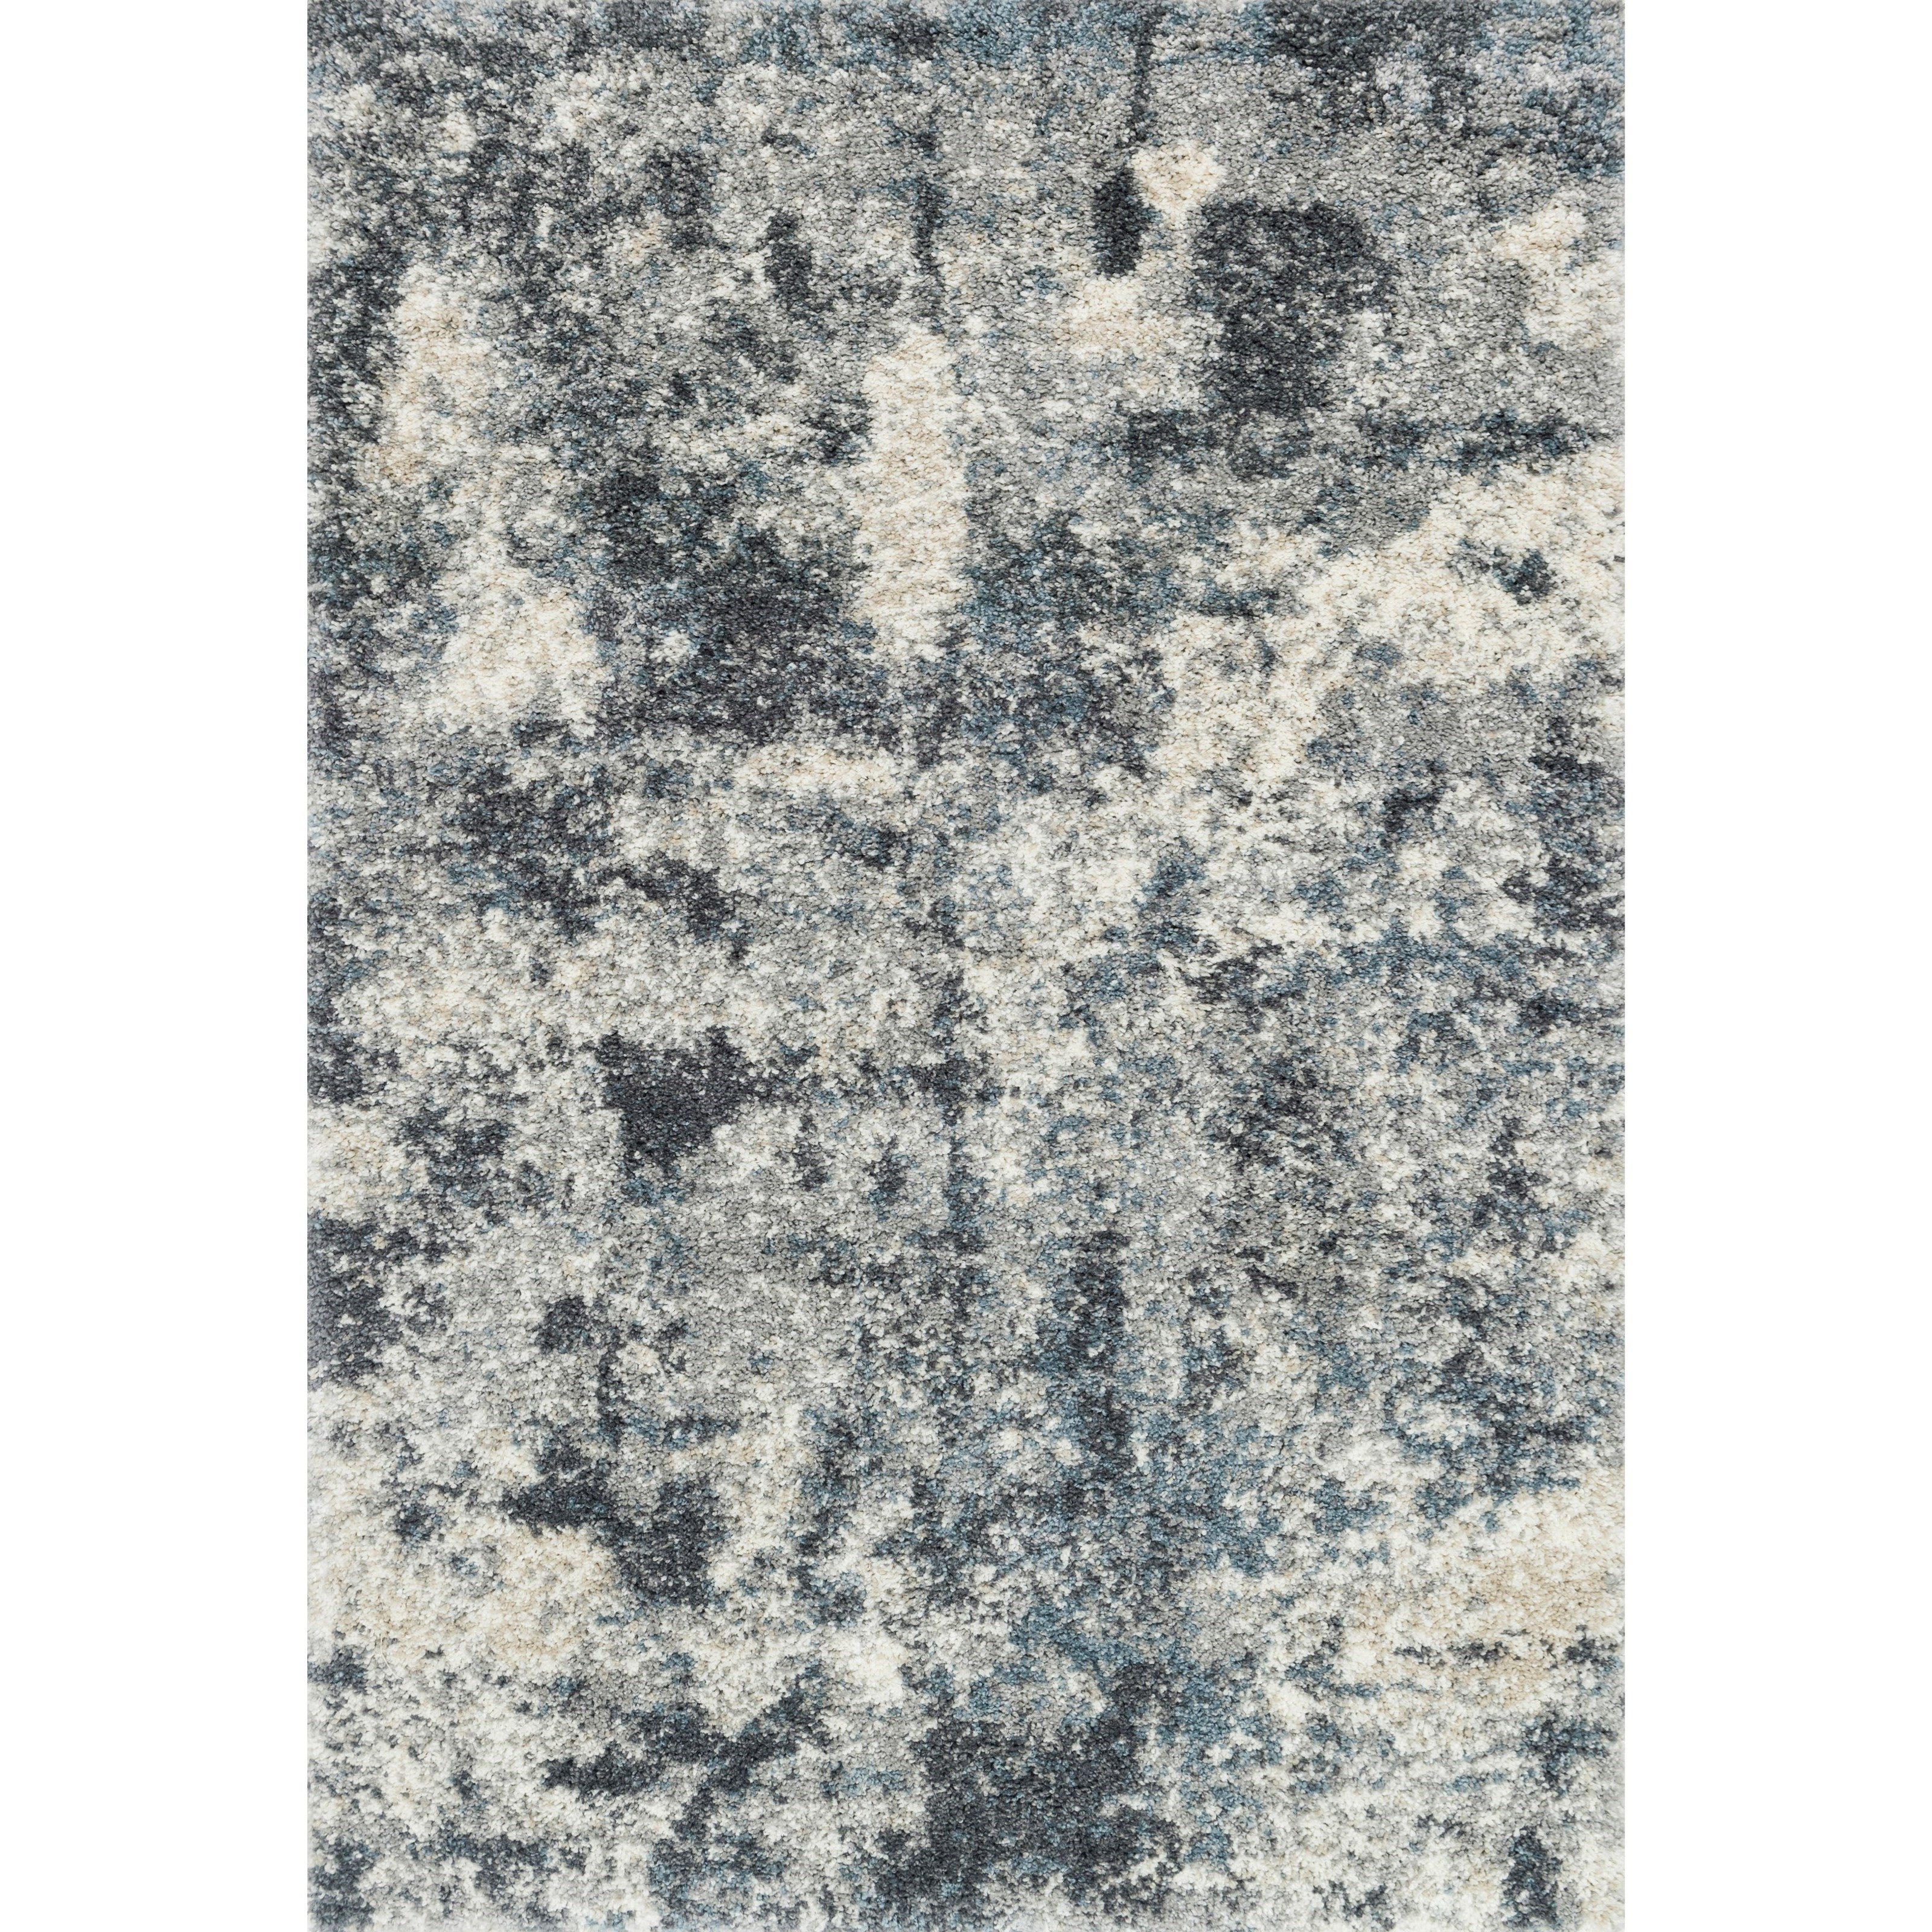 """Quincy 2'3"""" x 4'0"""" Slate Rug by Loloi Rugs at Virginia Furniture Market"""